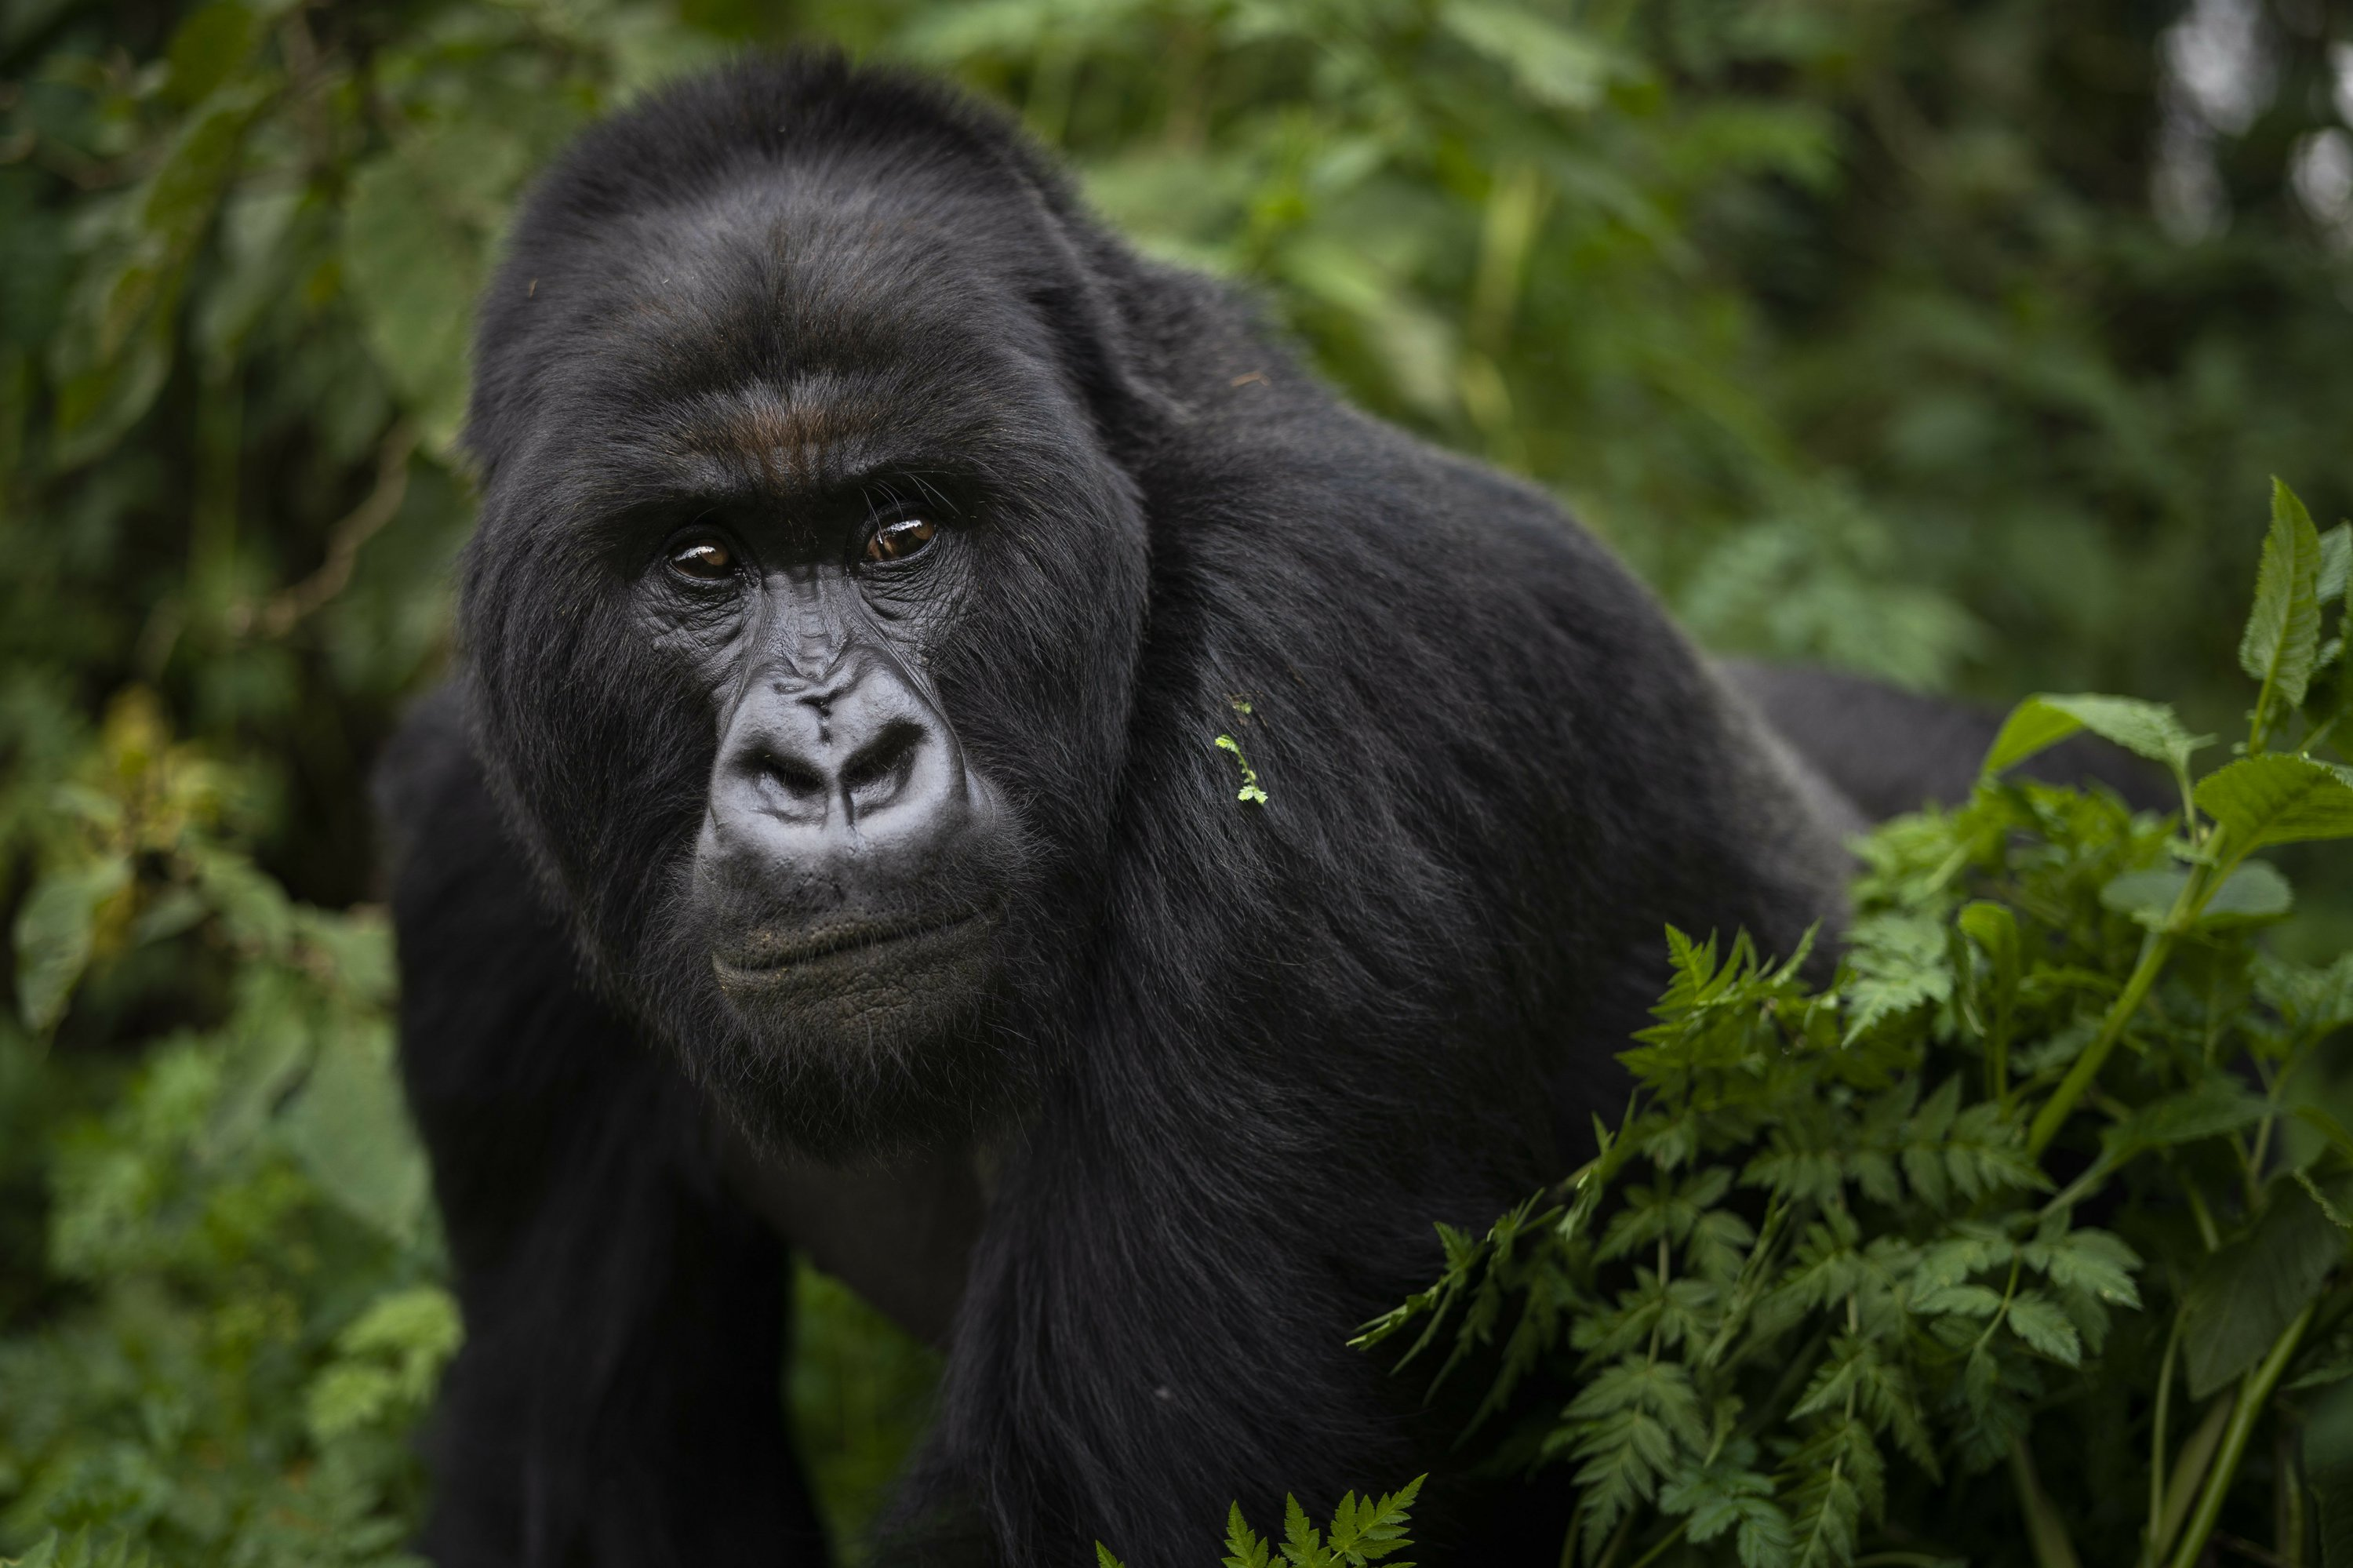 Intense monitoring and care lift mountain gorilla numbers